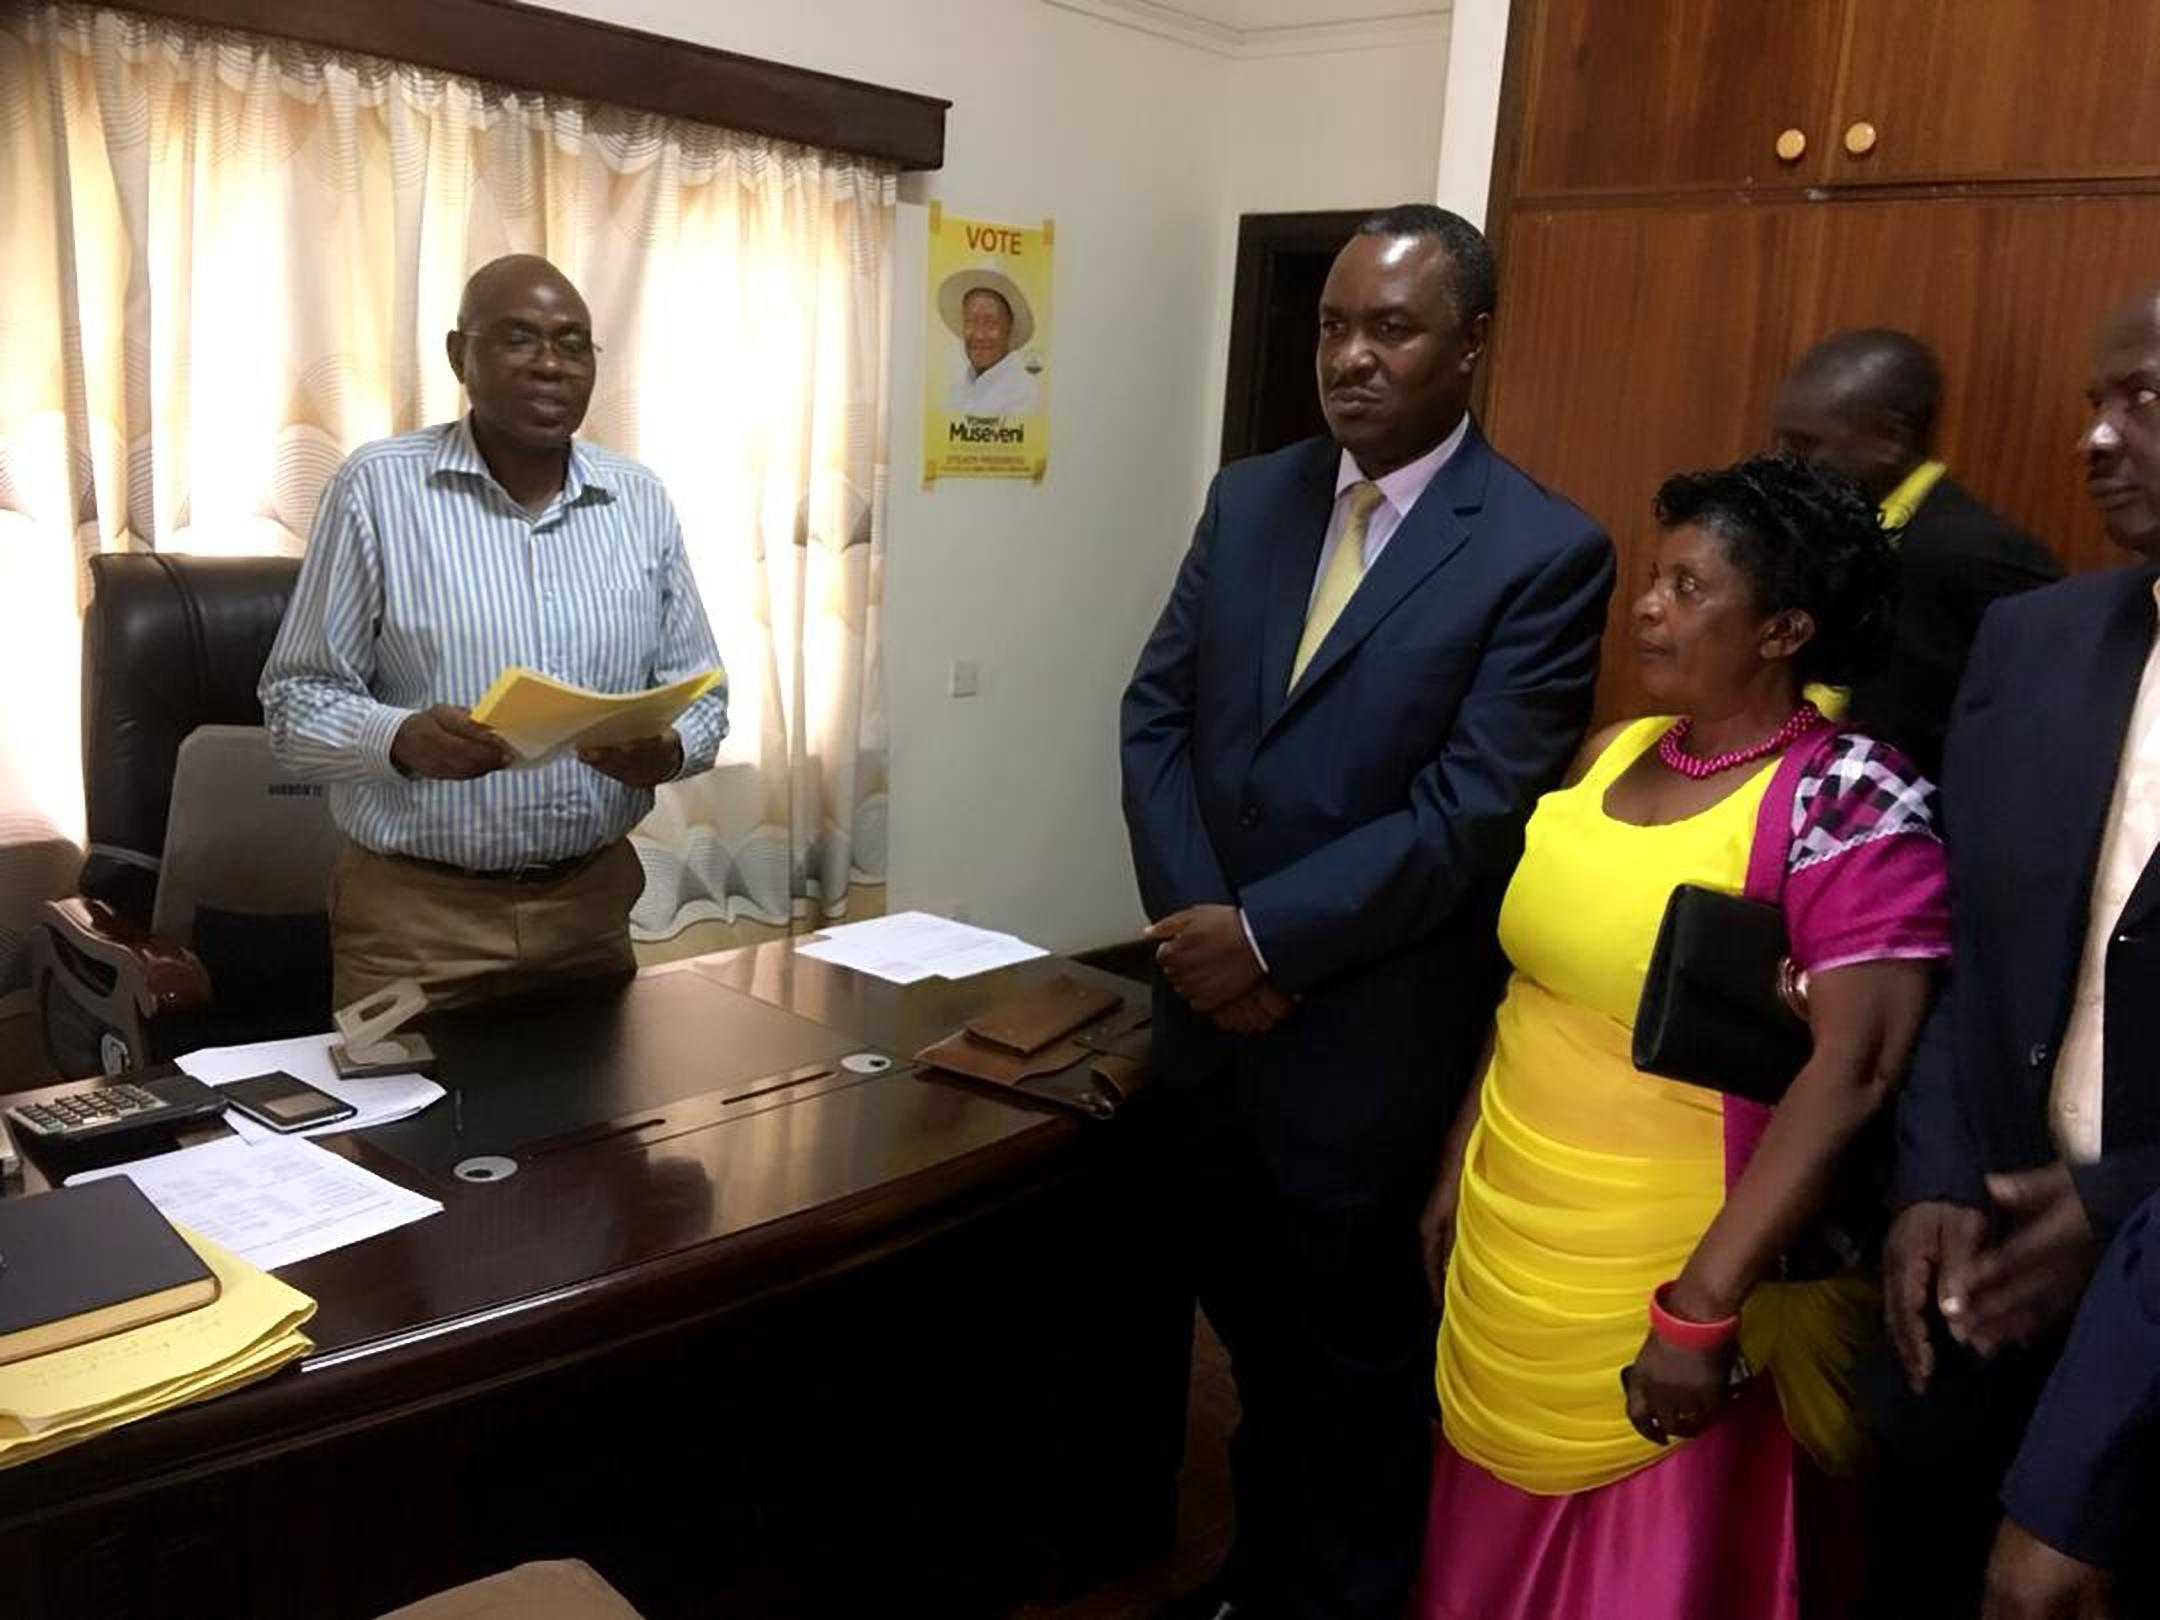 Minister Elioda after being nominated for NRM primaries on Tuesday afternoon (PML PHOTO)